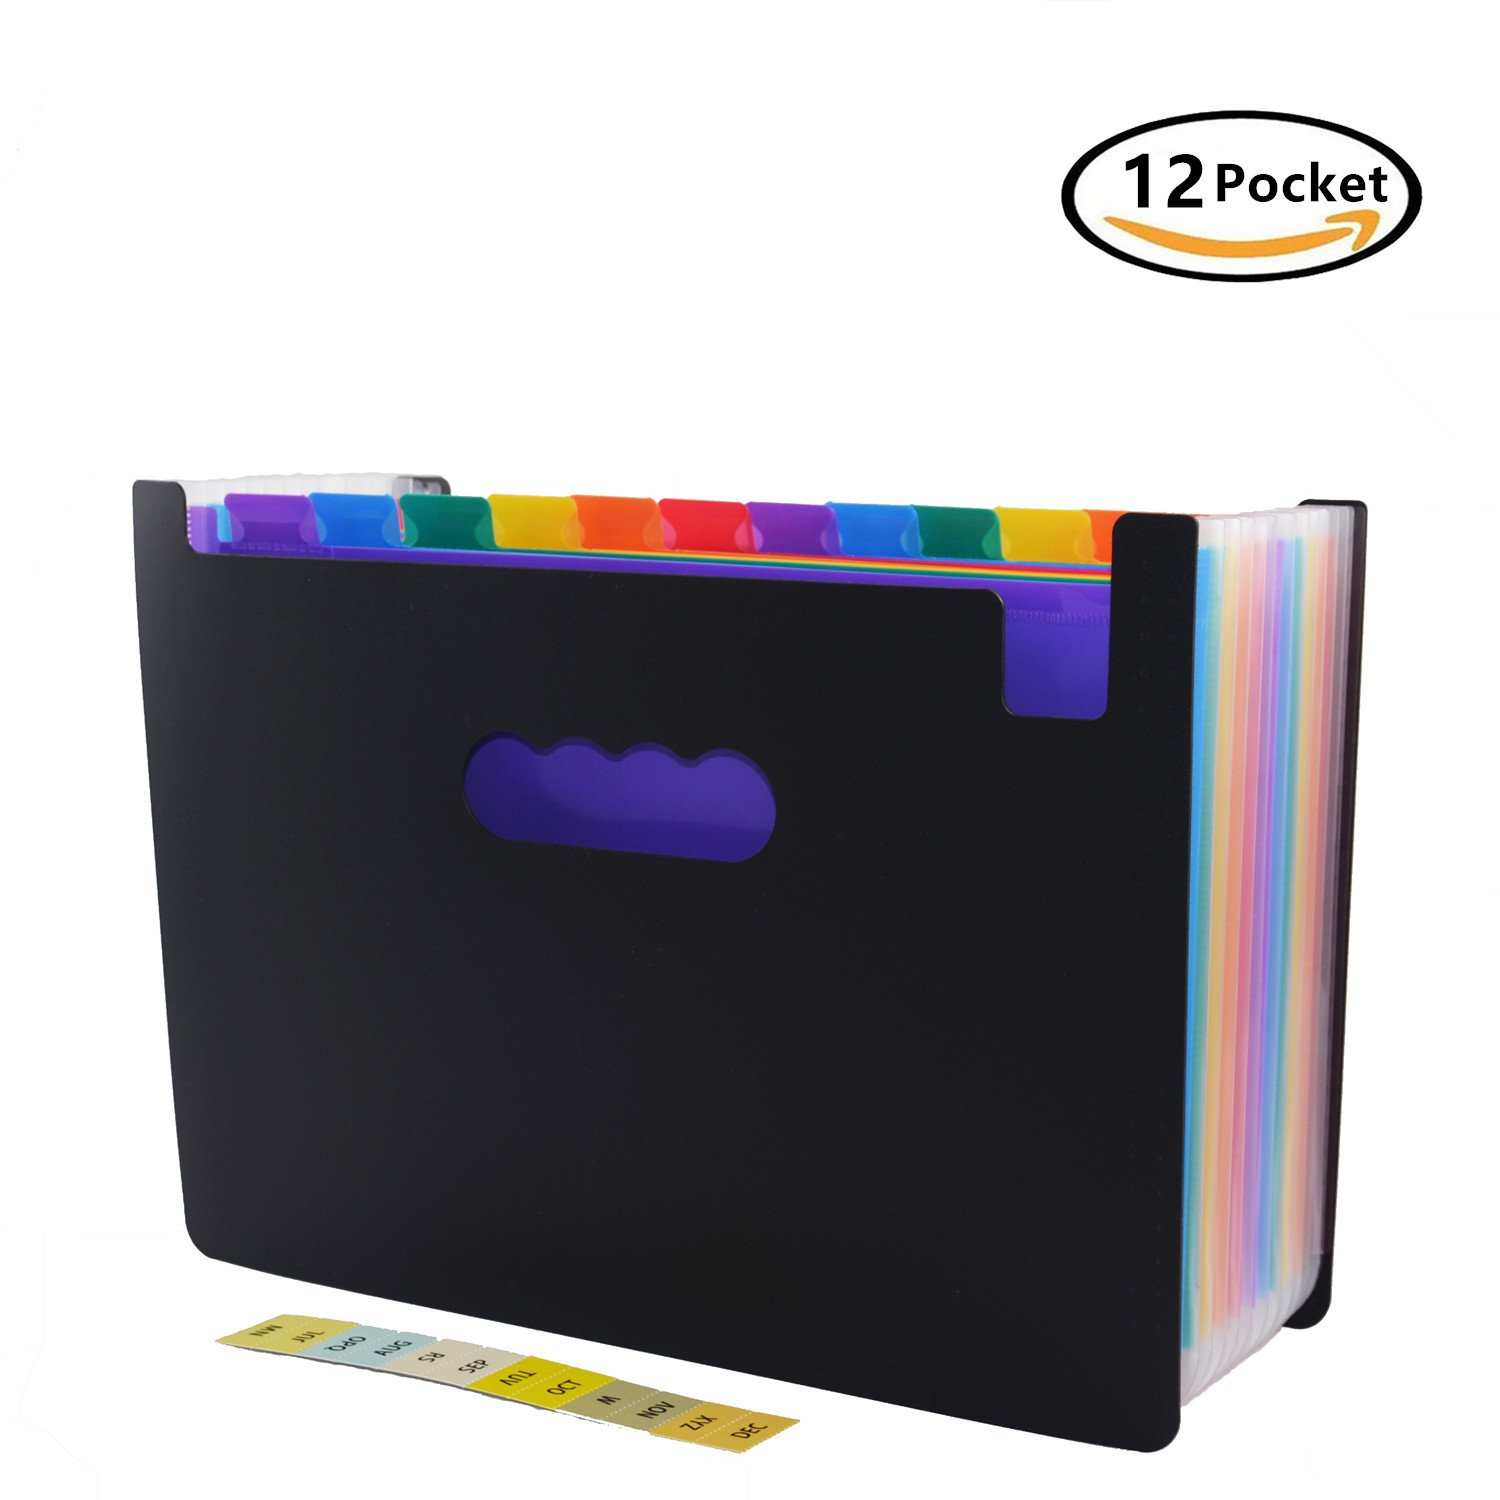 12 Pockets Expanding File Folder with Labels,A4 Size Colorful file organizer Portable Desktop Business Paper Document Holder Wallet for Home Office School Hospita (12 pocket)